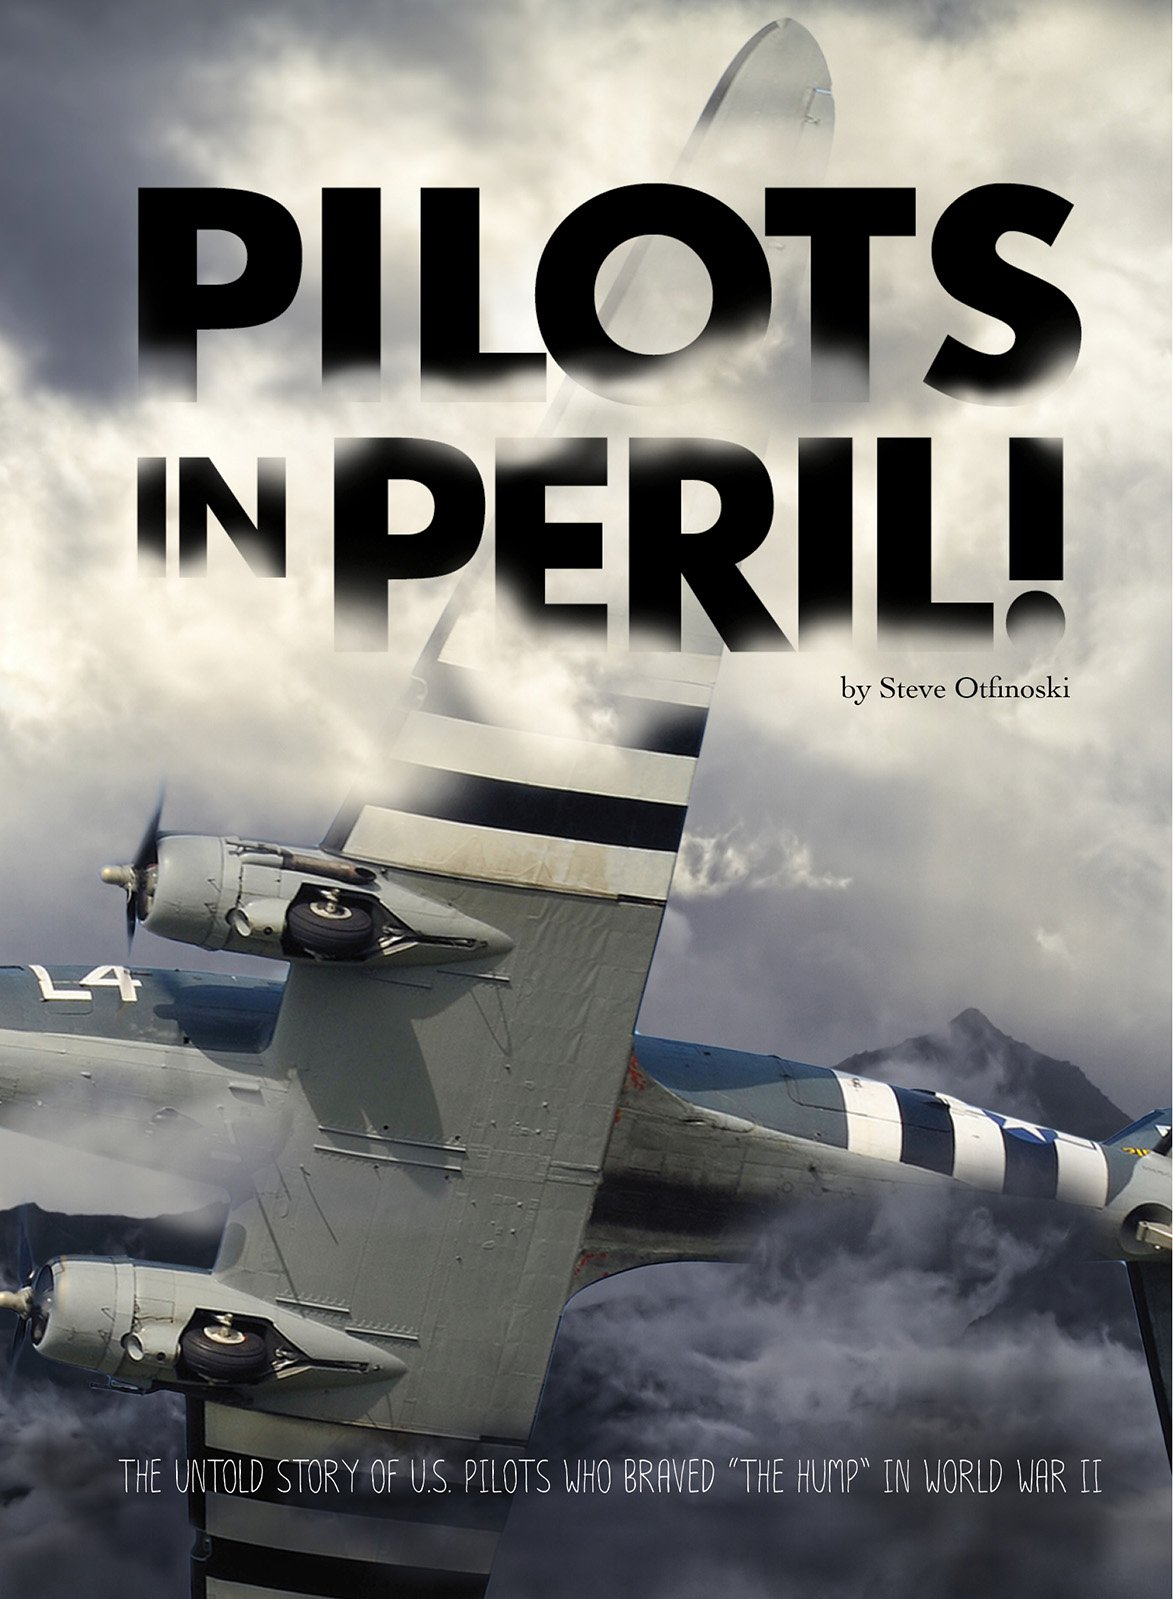 Pilots in Peril!: The Untold Story of U.S. Pilots Who Braved the Hump in World War II (Encounter: Narrative Nonfiction Stories)